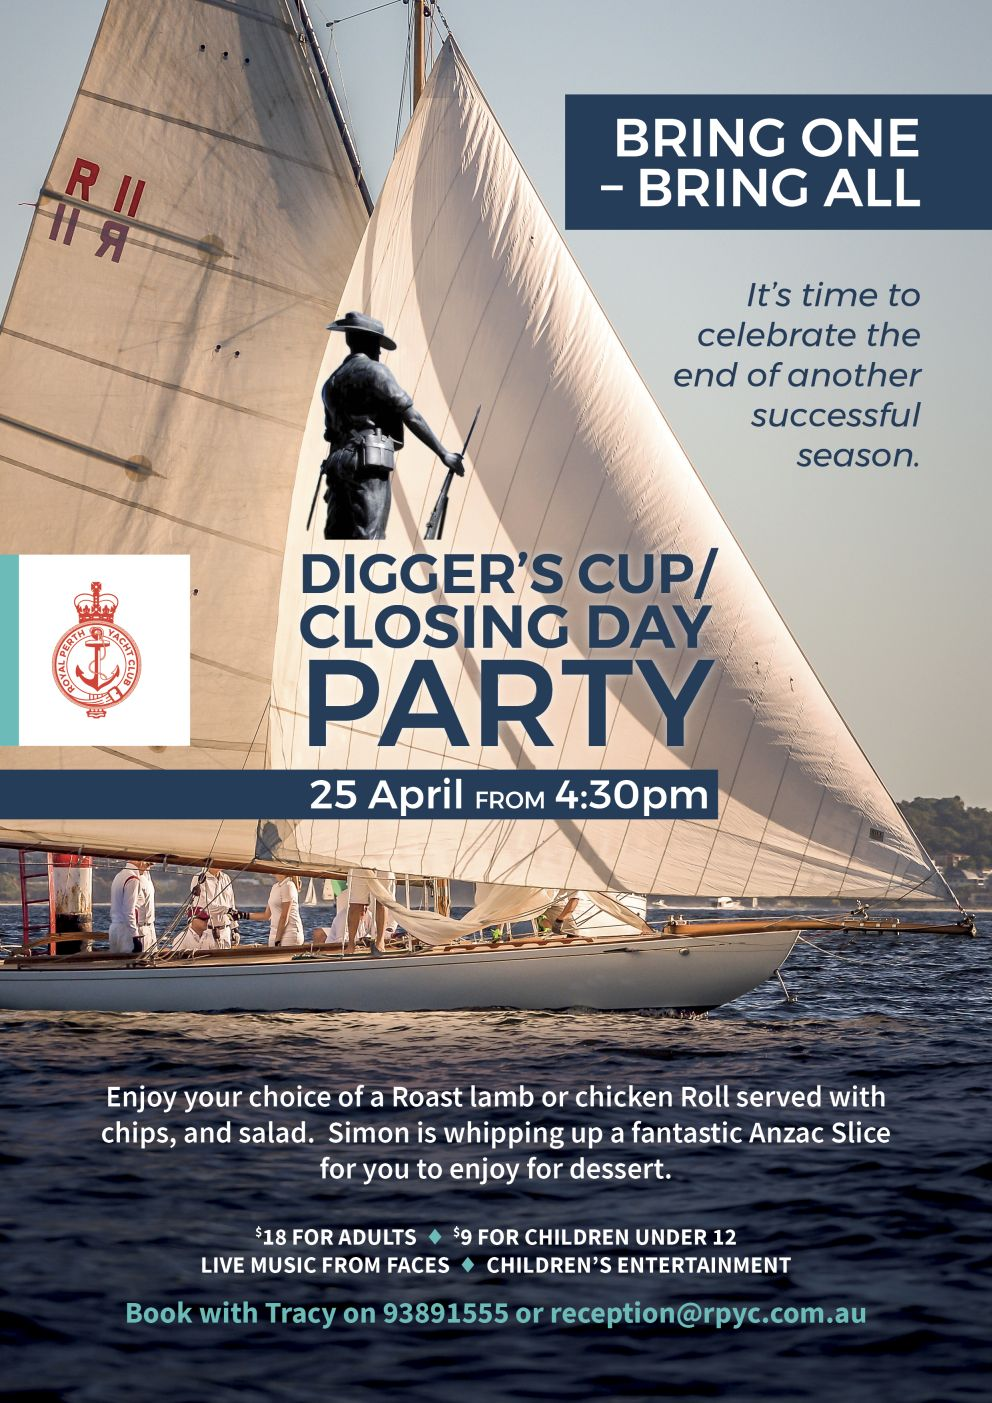 ITW April 2018 Diggers Cup